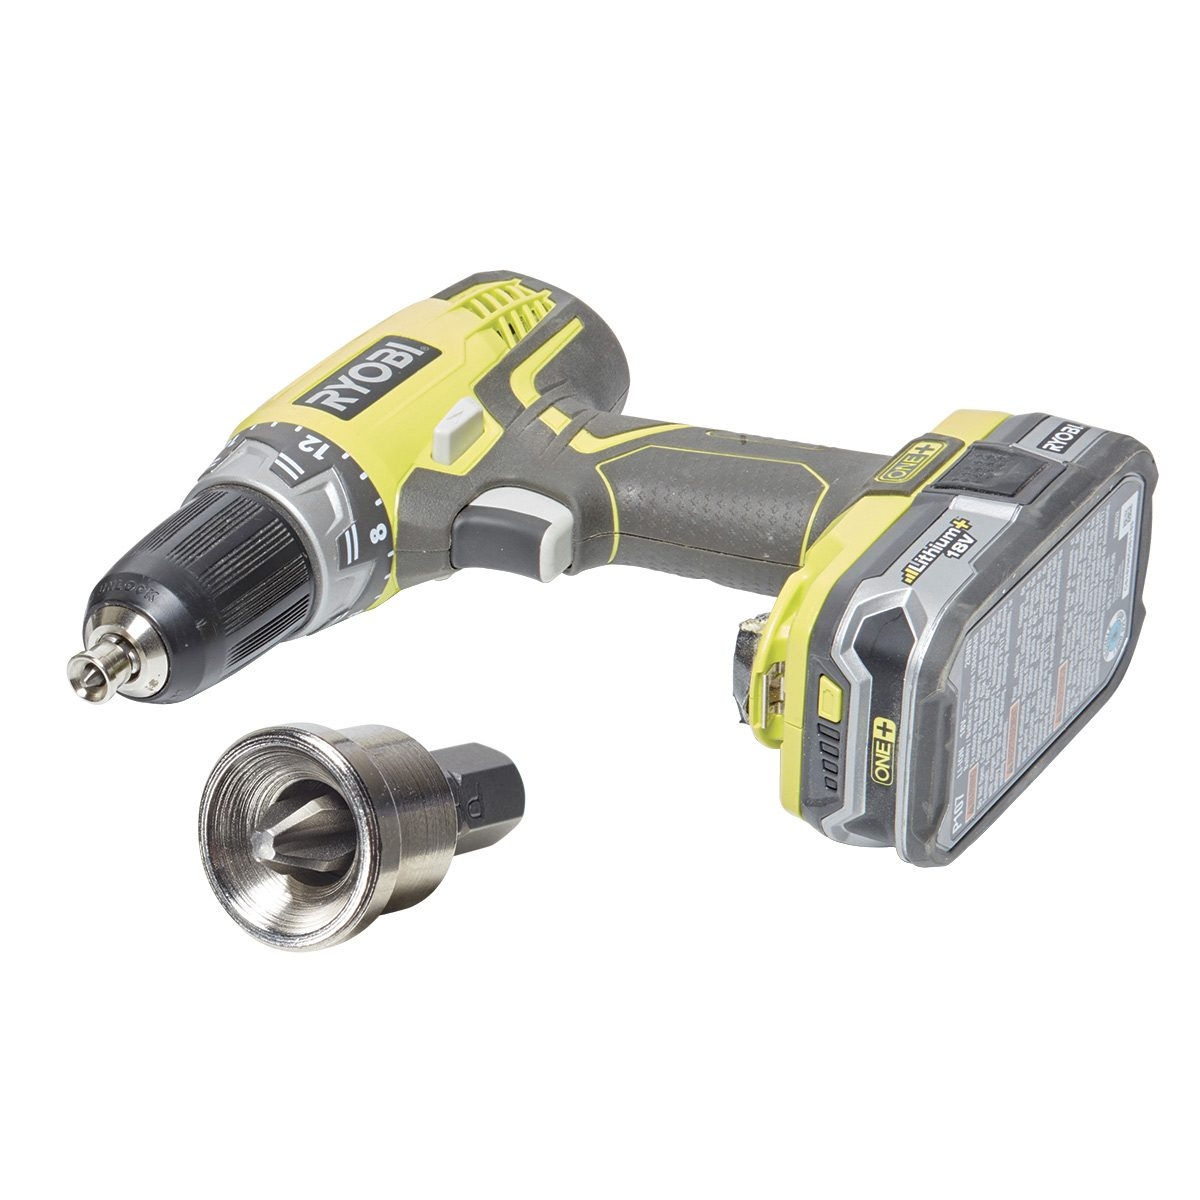 Adapter for cordless drywall screw gun